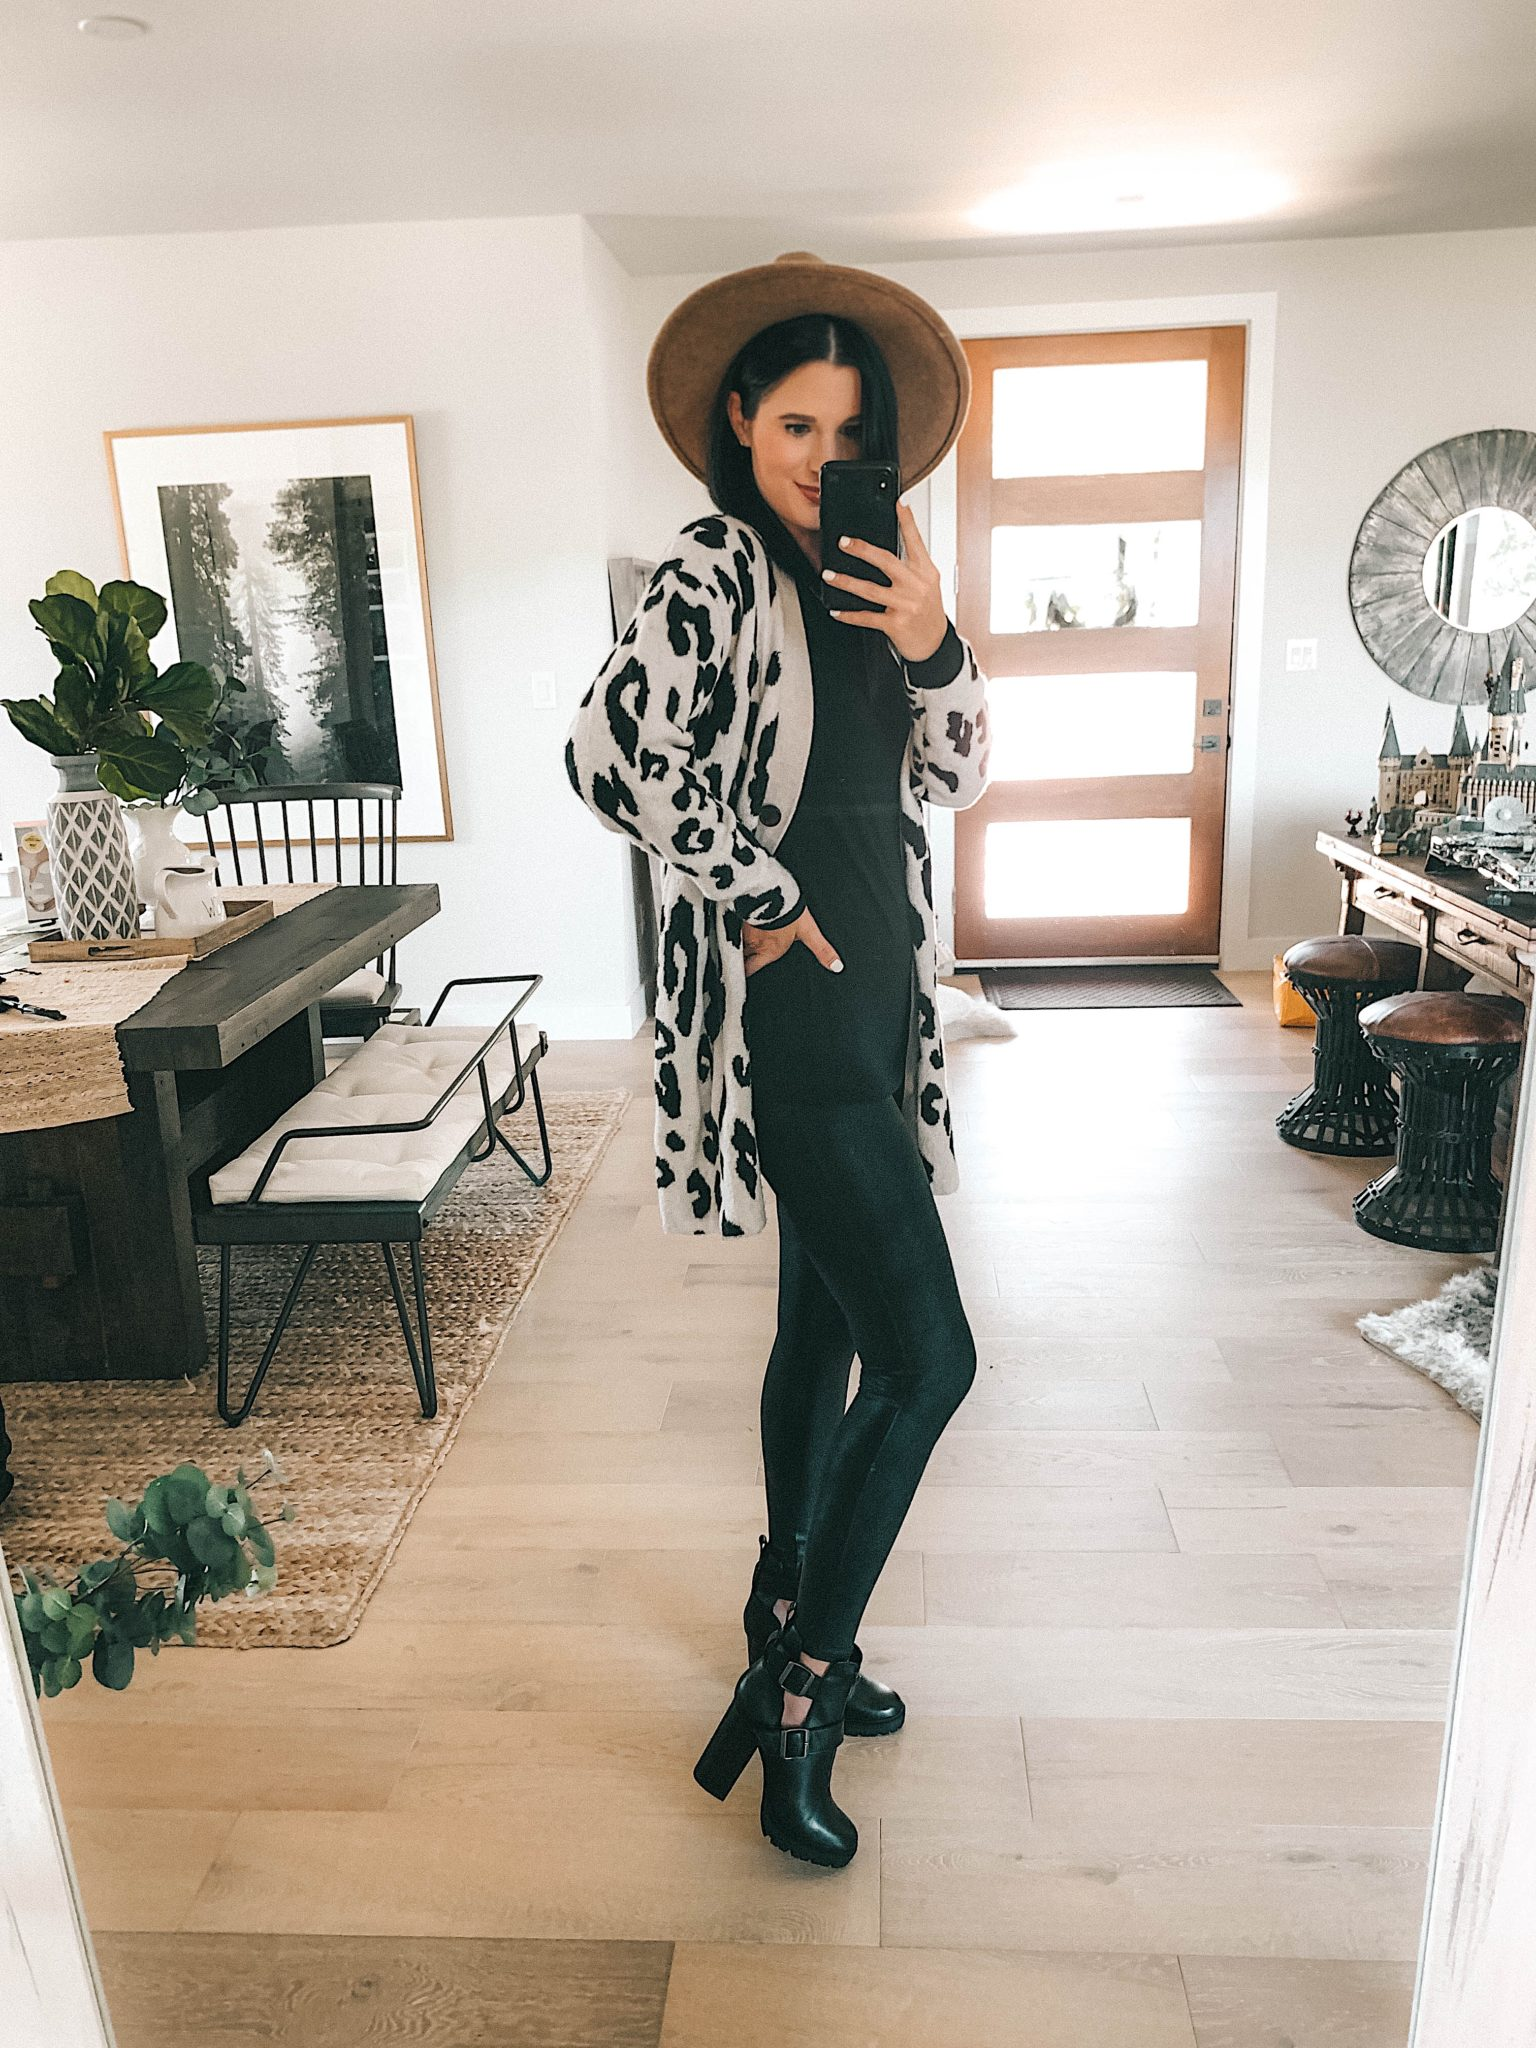 Create a Capsule Wardrobe with Nordstrom Anniversary Sale Pieces by popular Austin fashion blog, Dressed to Kill: image of a woman standing in her house and wearing Nordstrom Steve Madden Black Booties